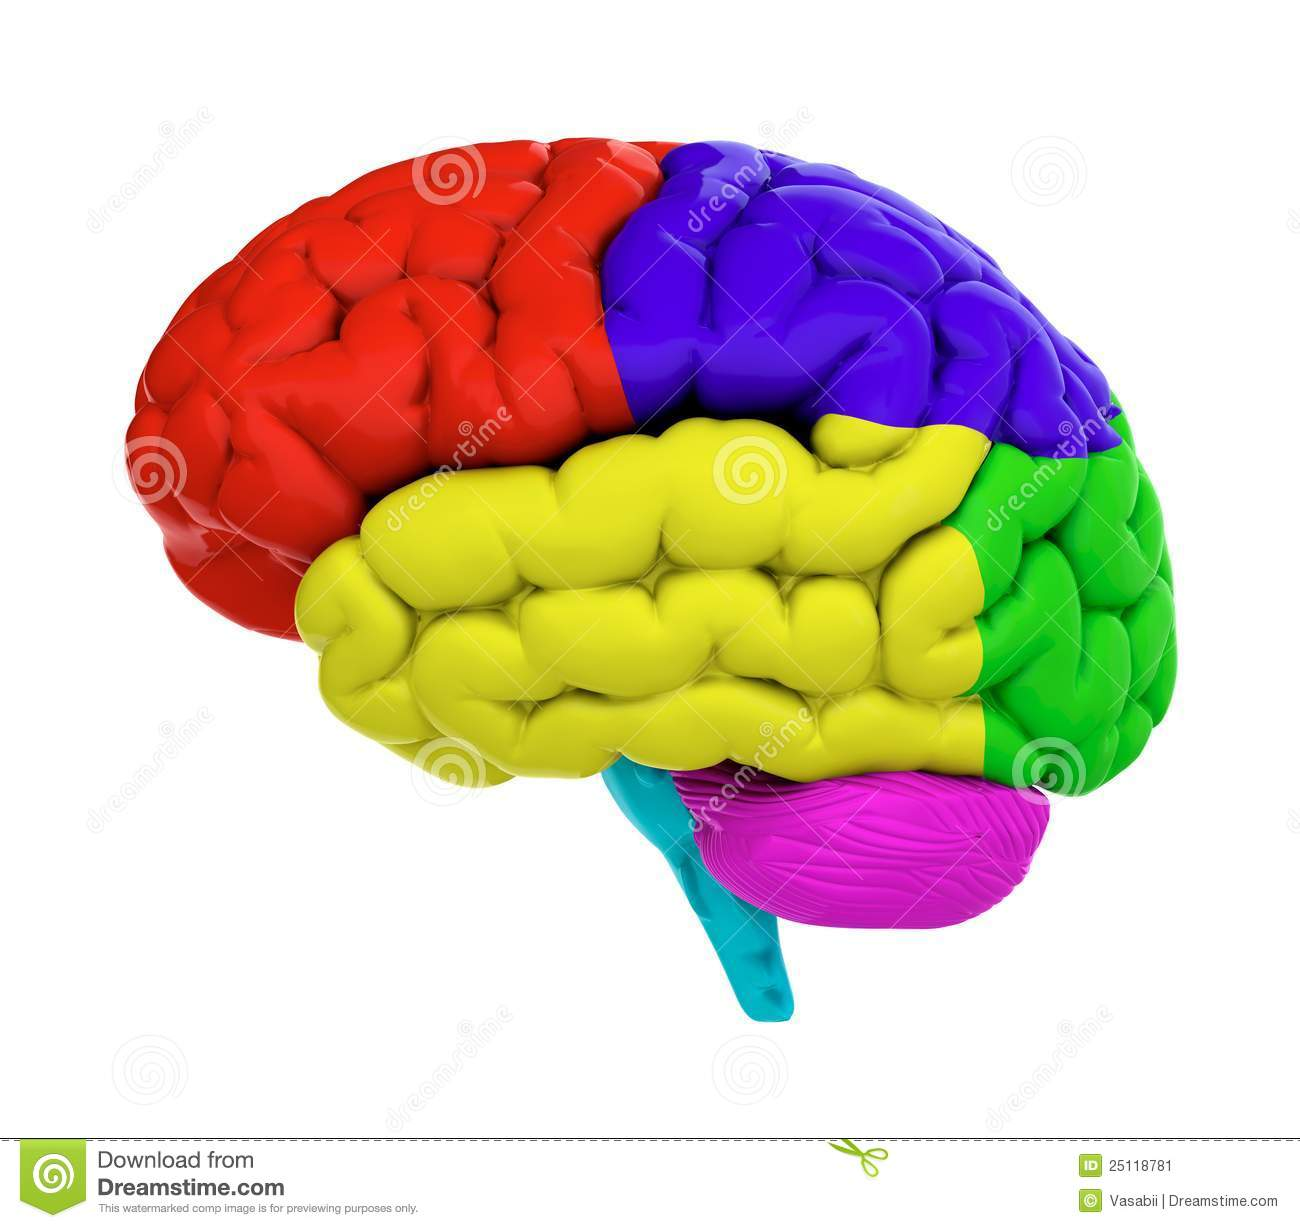 Colored Brain Stock Image - Image: 25118781